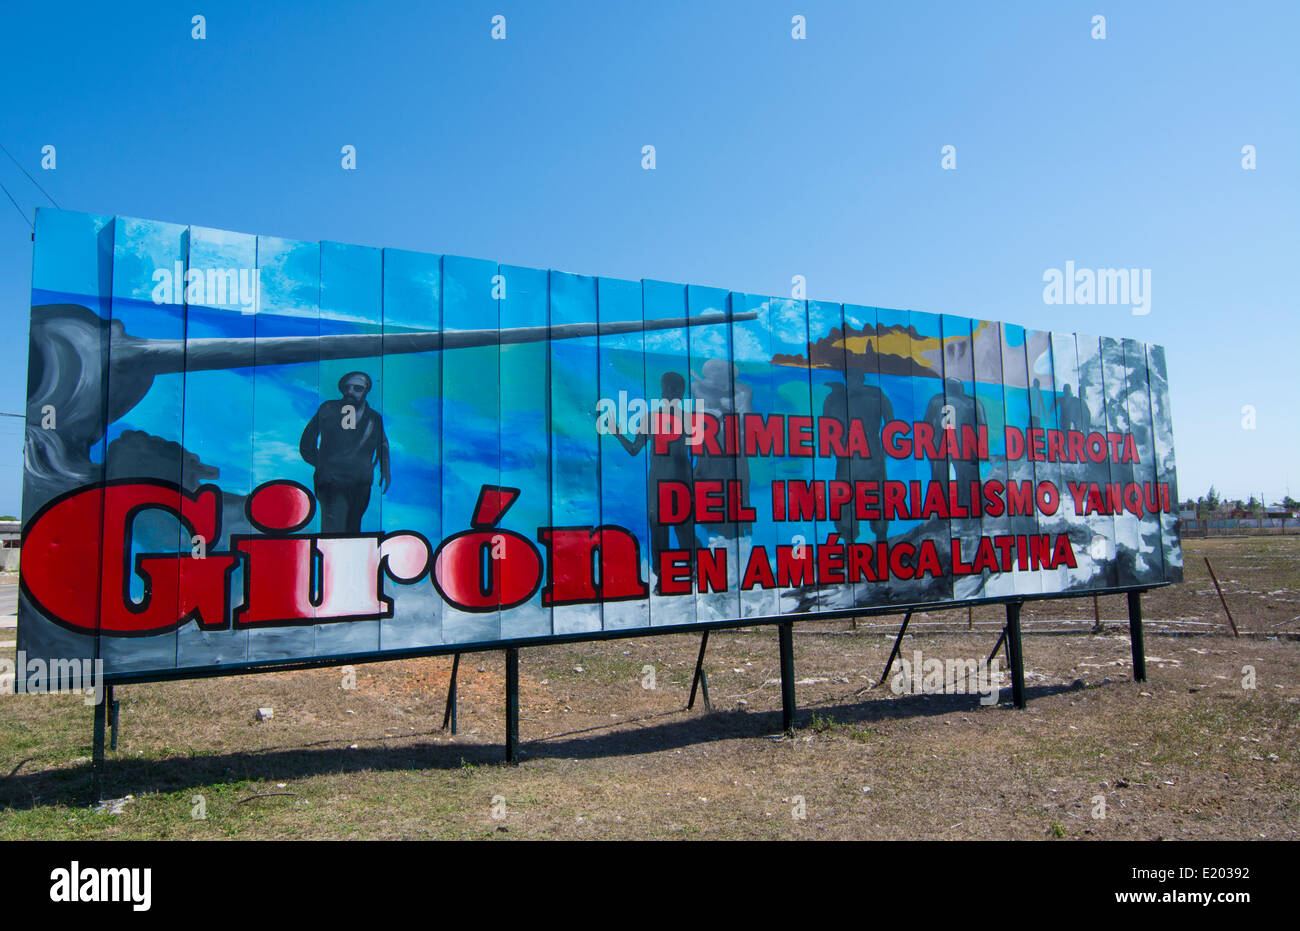 Billboard in Giron Cuba about Bay of Pigs in Spanish saying First Defeat of Imperialist USA in Latin America - Stock Image